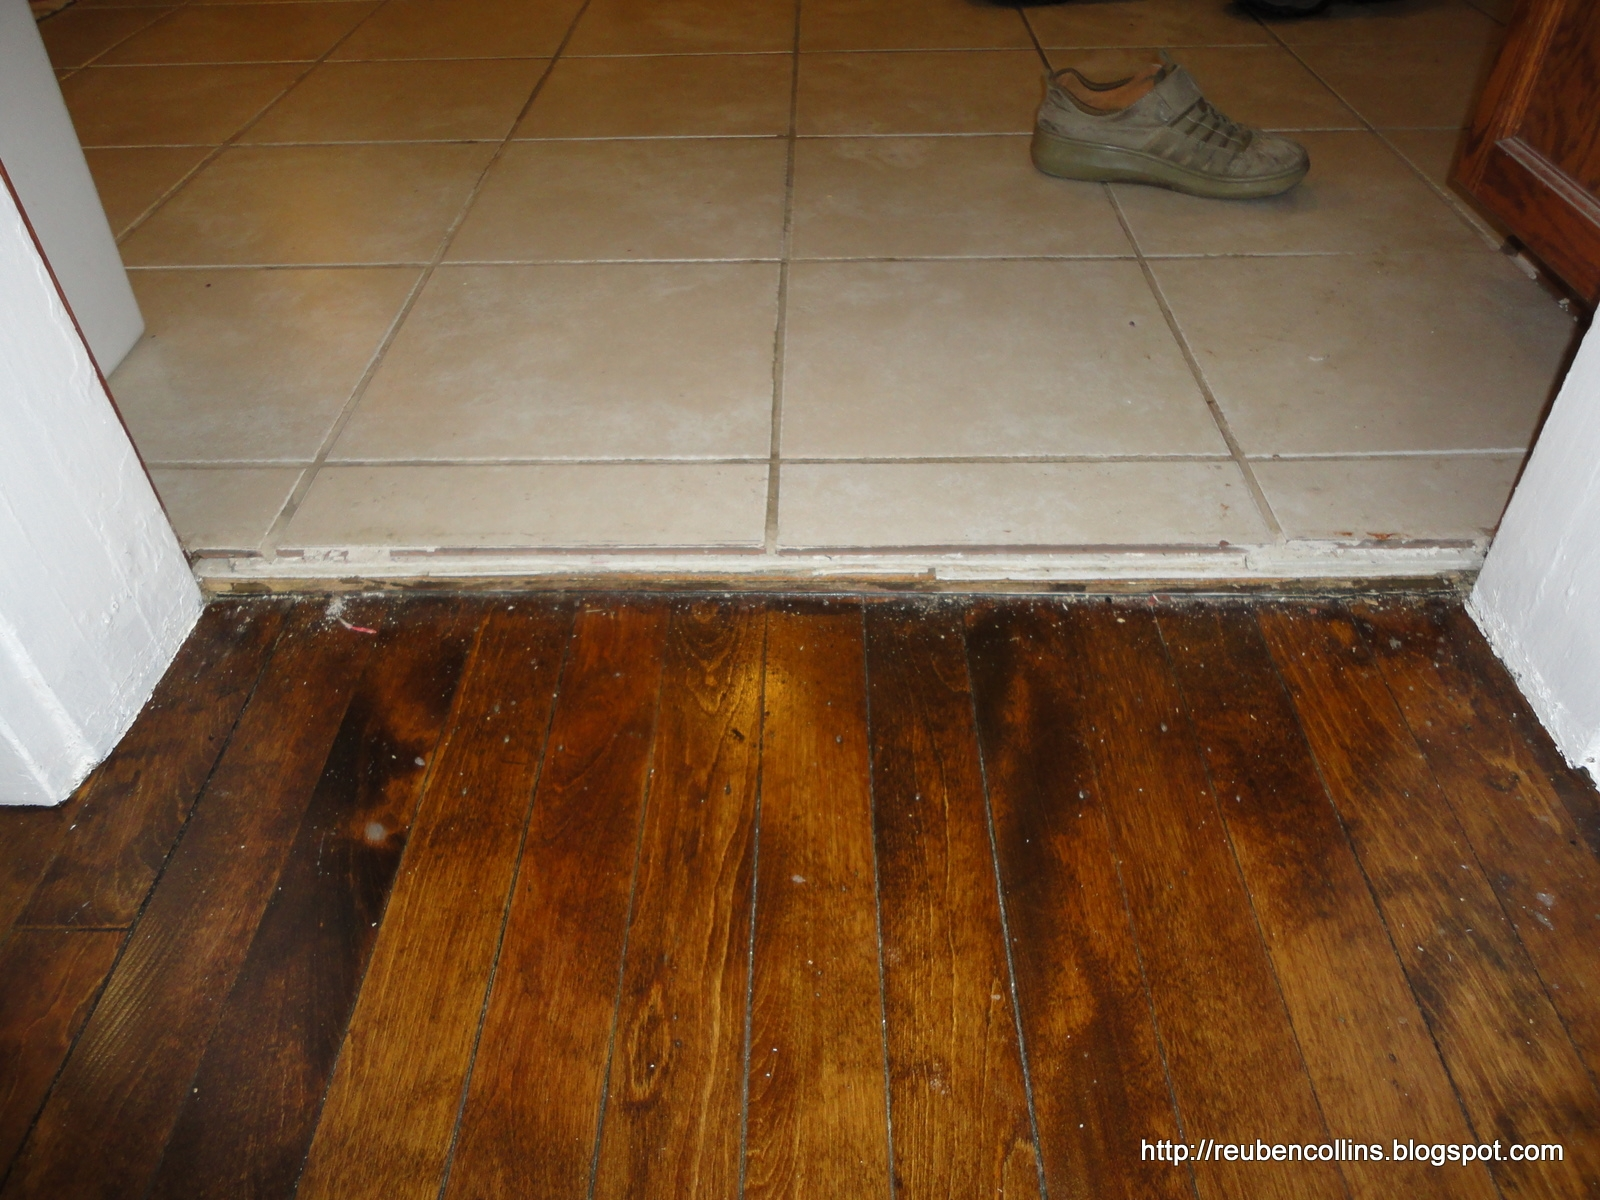 Pictures Of Wood Floors Next To Tile Floors